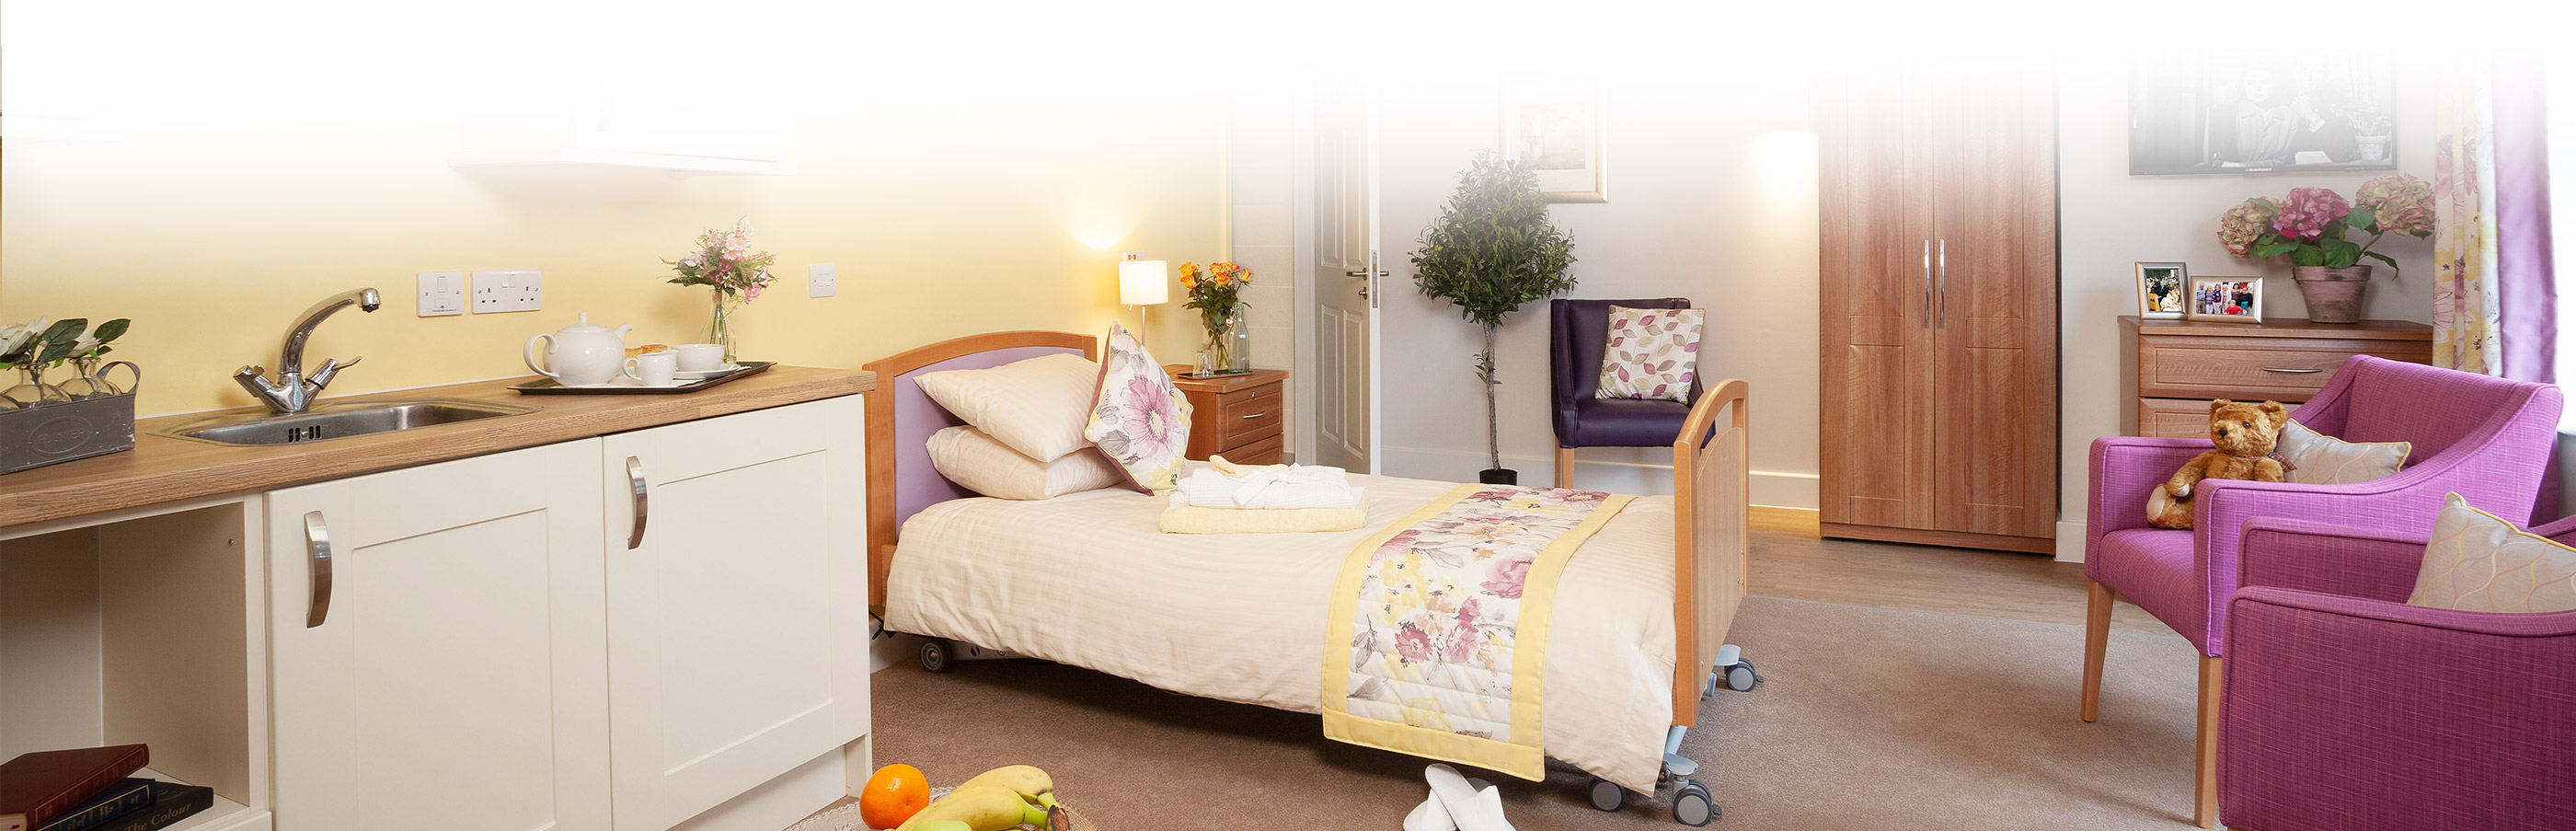 Bedroom at Cedar View Care Centre Croydon